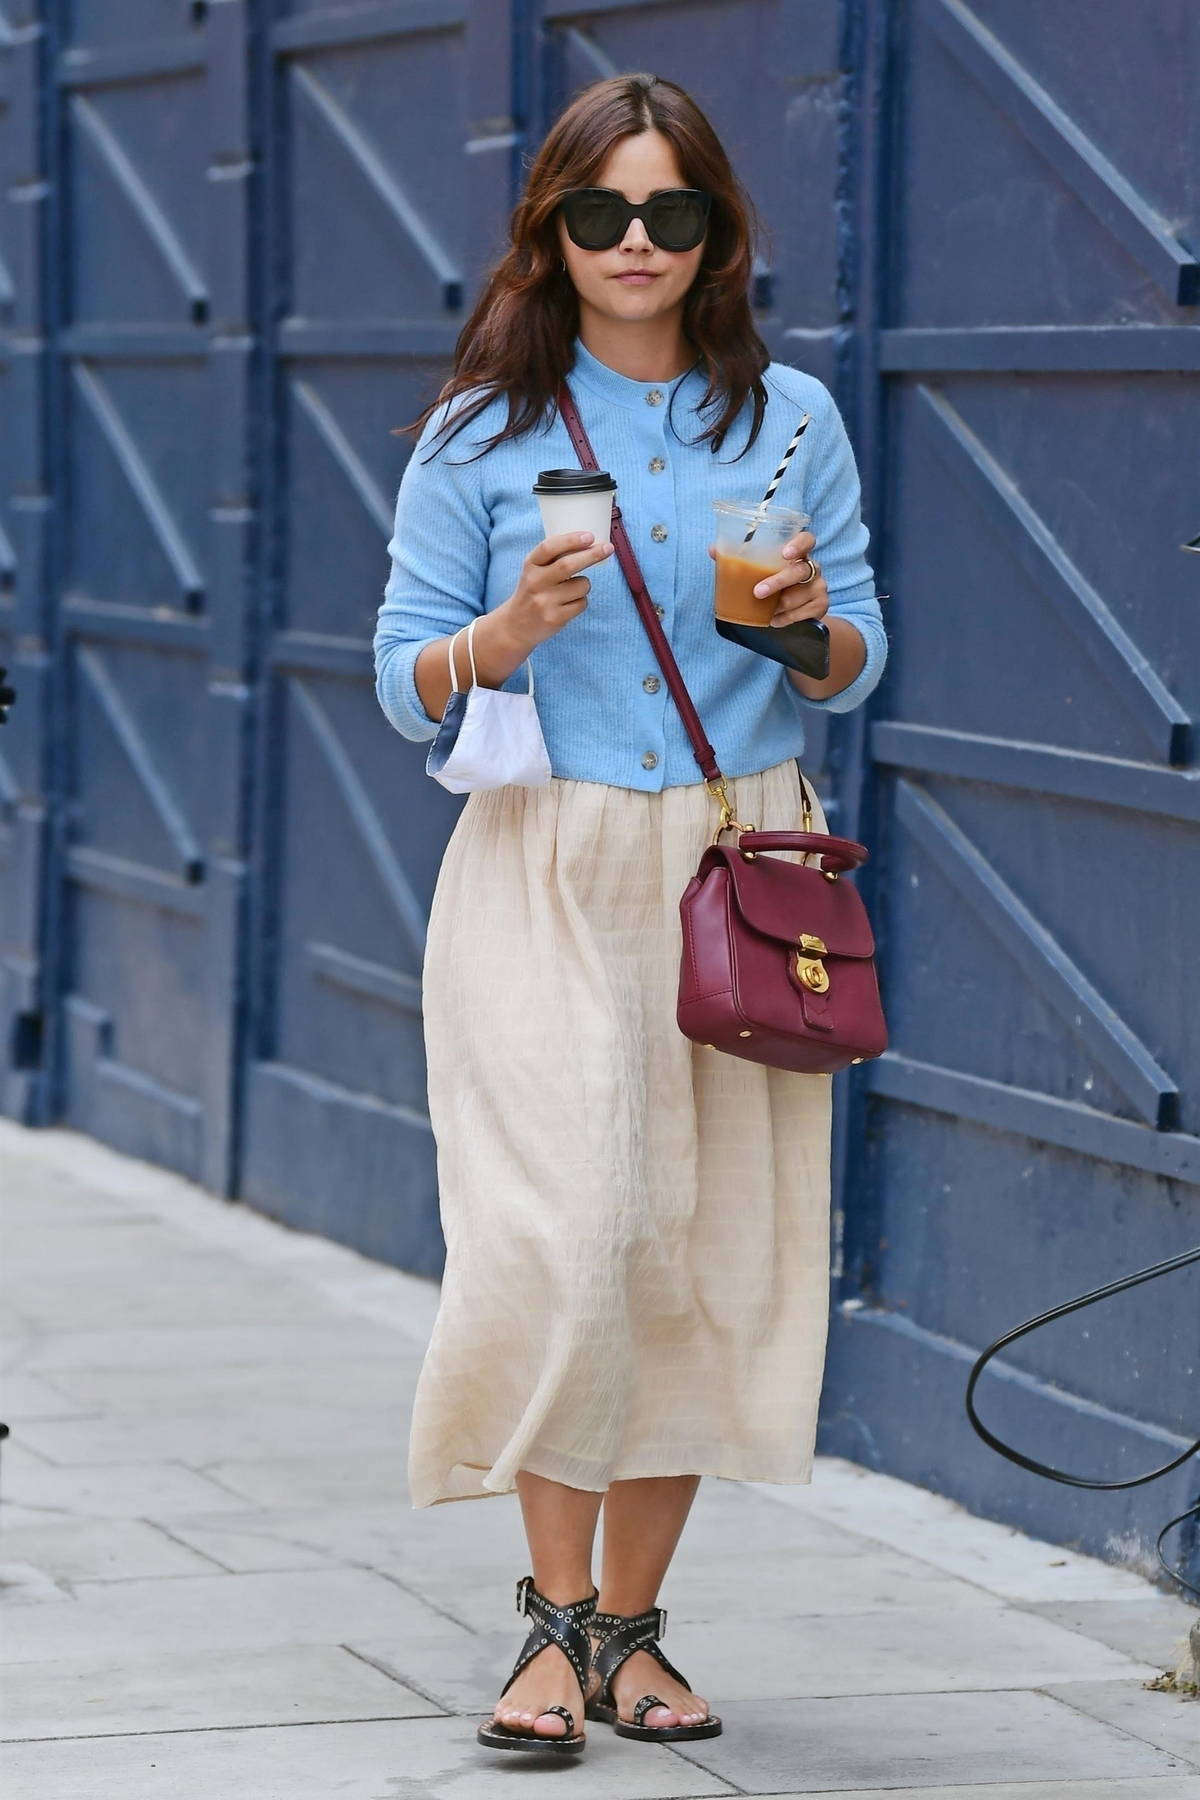 Jenna Coleman wears a pastel blue top and cream skirt while making a coffee run in London, UK